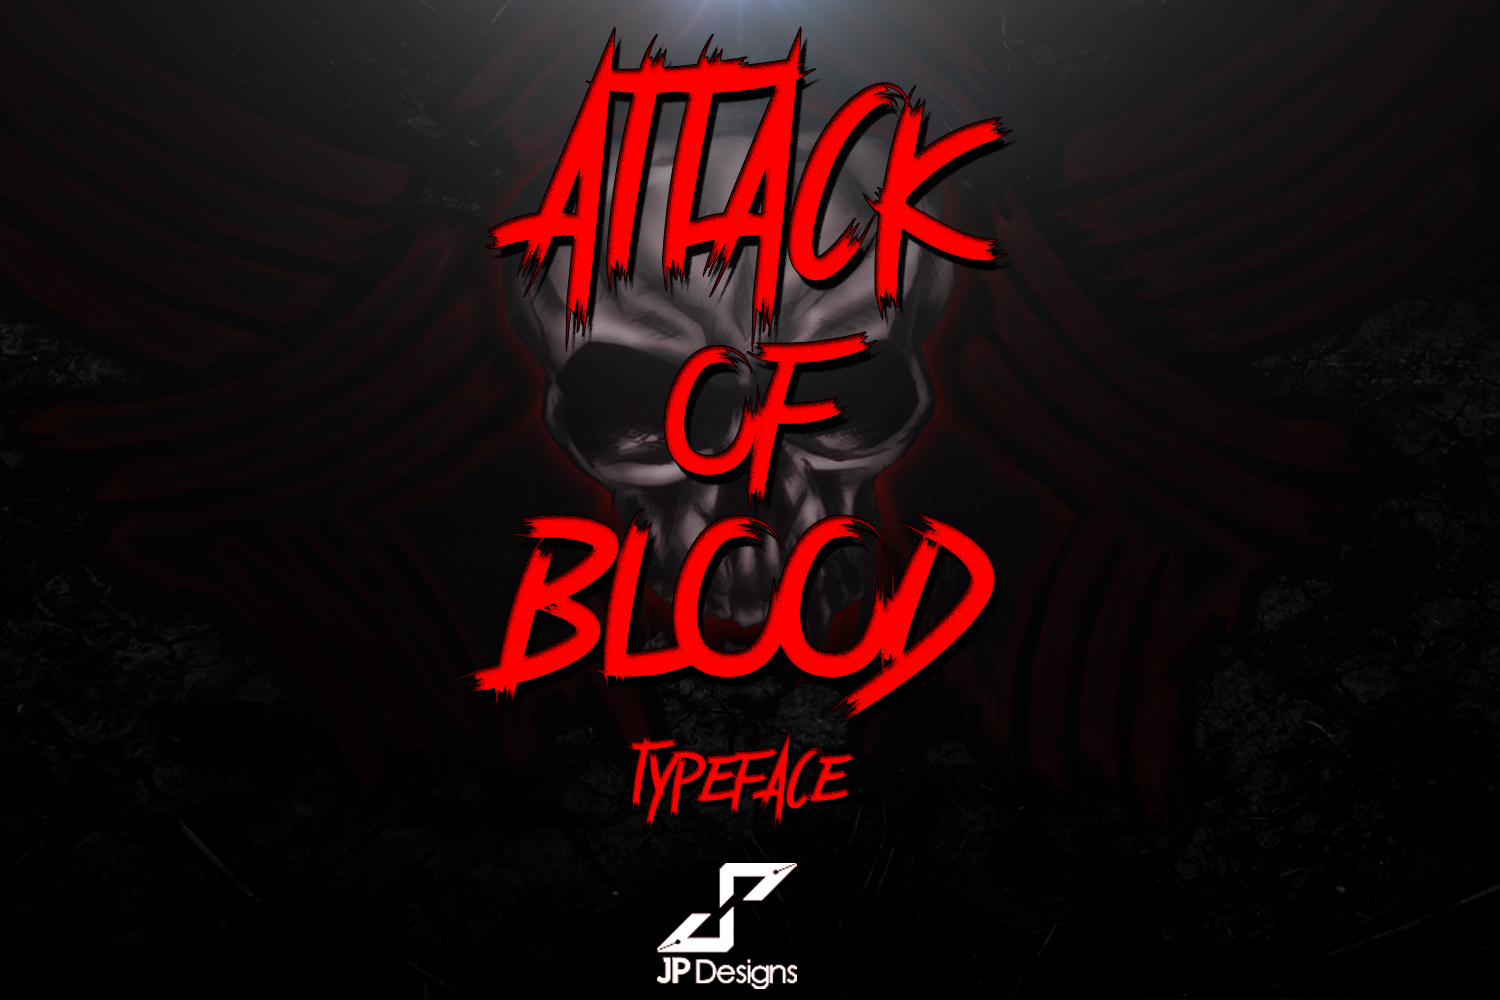 Attack of Blood